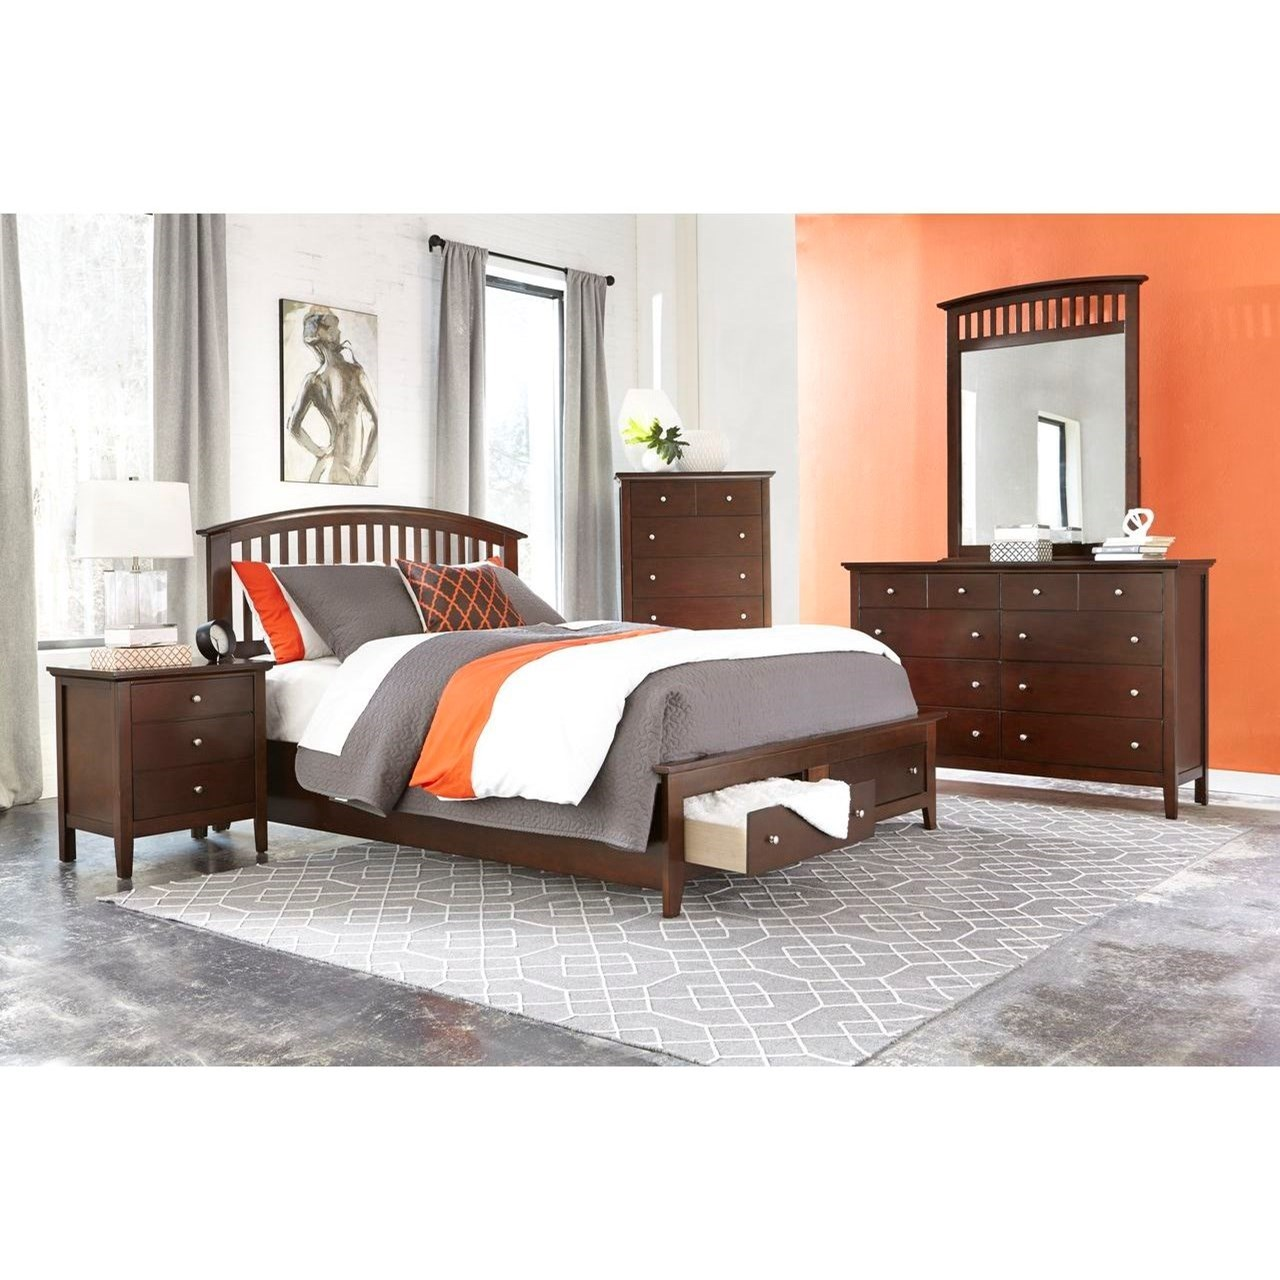 Lifestyle Bryce 5PC Queen Storage Bedroom Set - Item Number: 8237A Q Bedroom Group 1